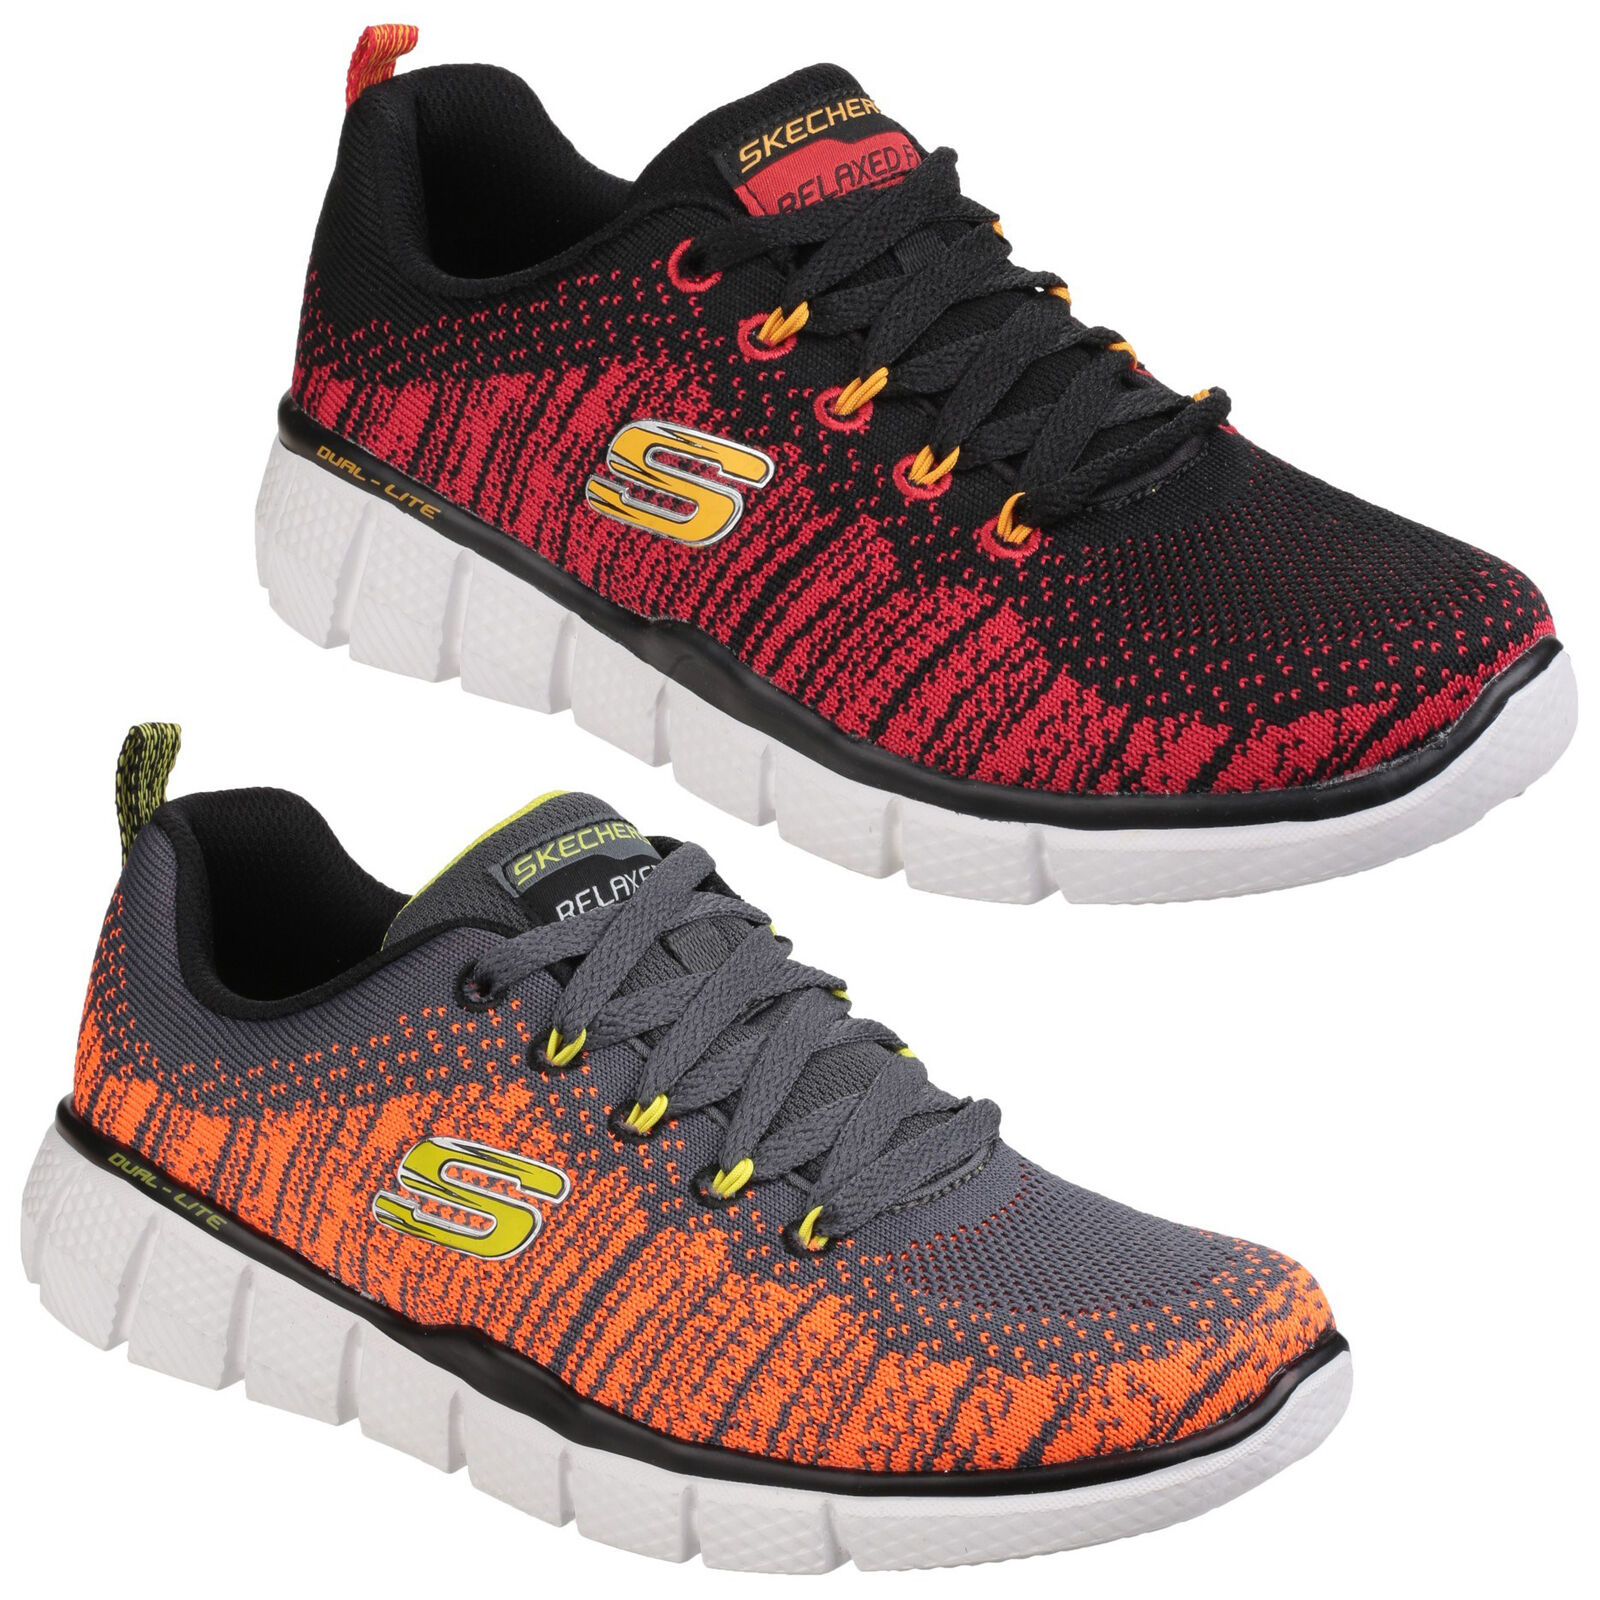 Details about Skechers Equalizer 2.0 Perfect Game Kids Boys Athletic Trainers Shoes UK10.5 6